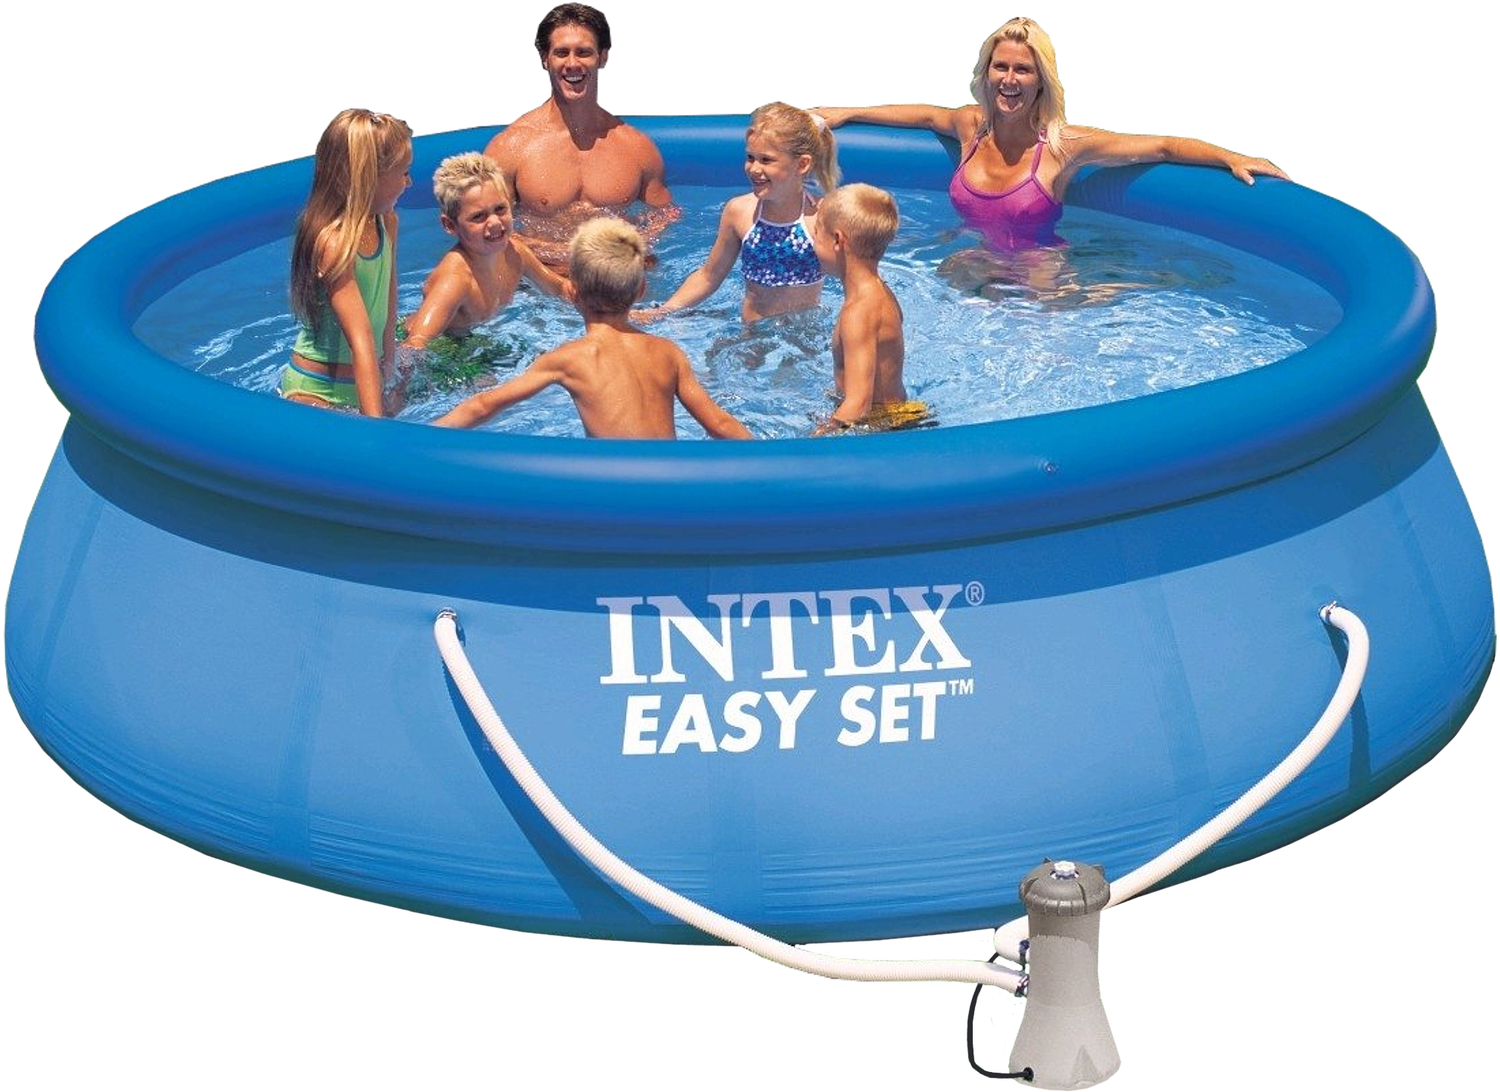 intex easy set pool mit filterpumpe. Black Bedroom Furniture Sets. Home Design Ideas